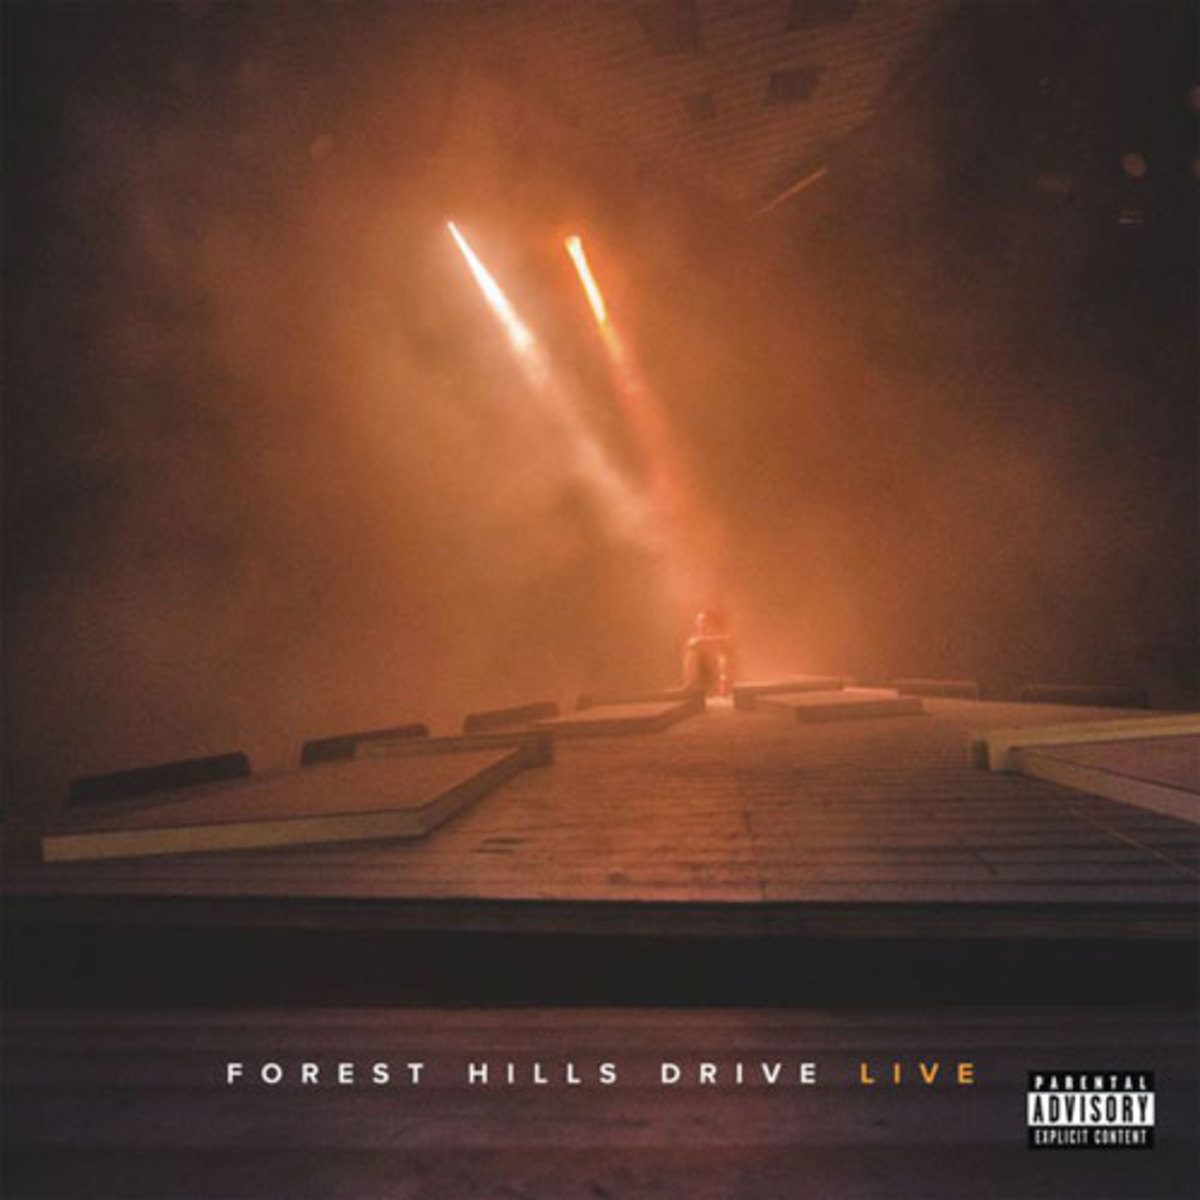 j-cole-forest-hills-drive-live.jpg